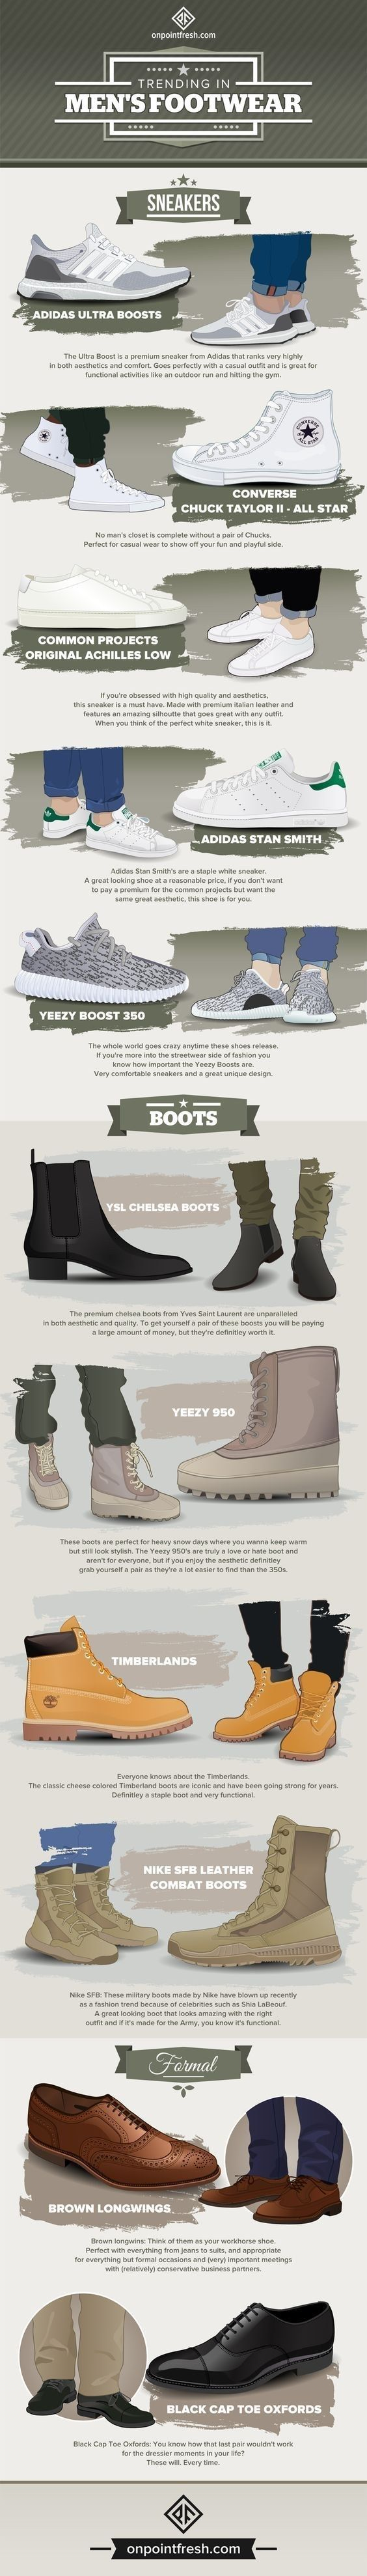 Check out this breakdown of current trends in footwear...